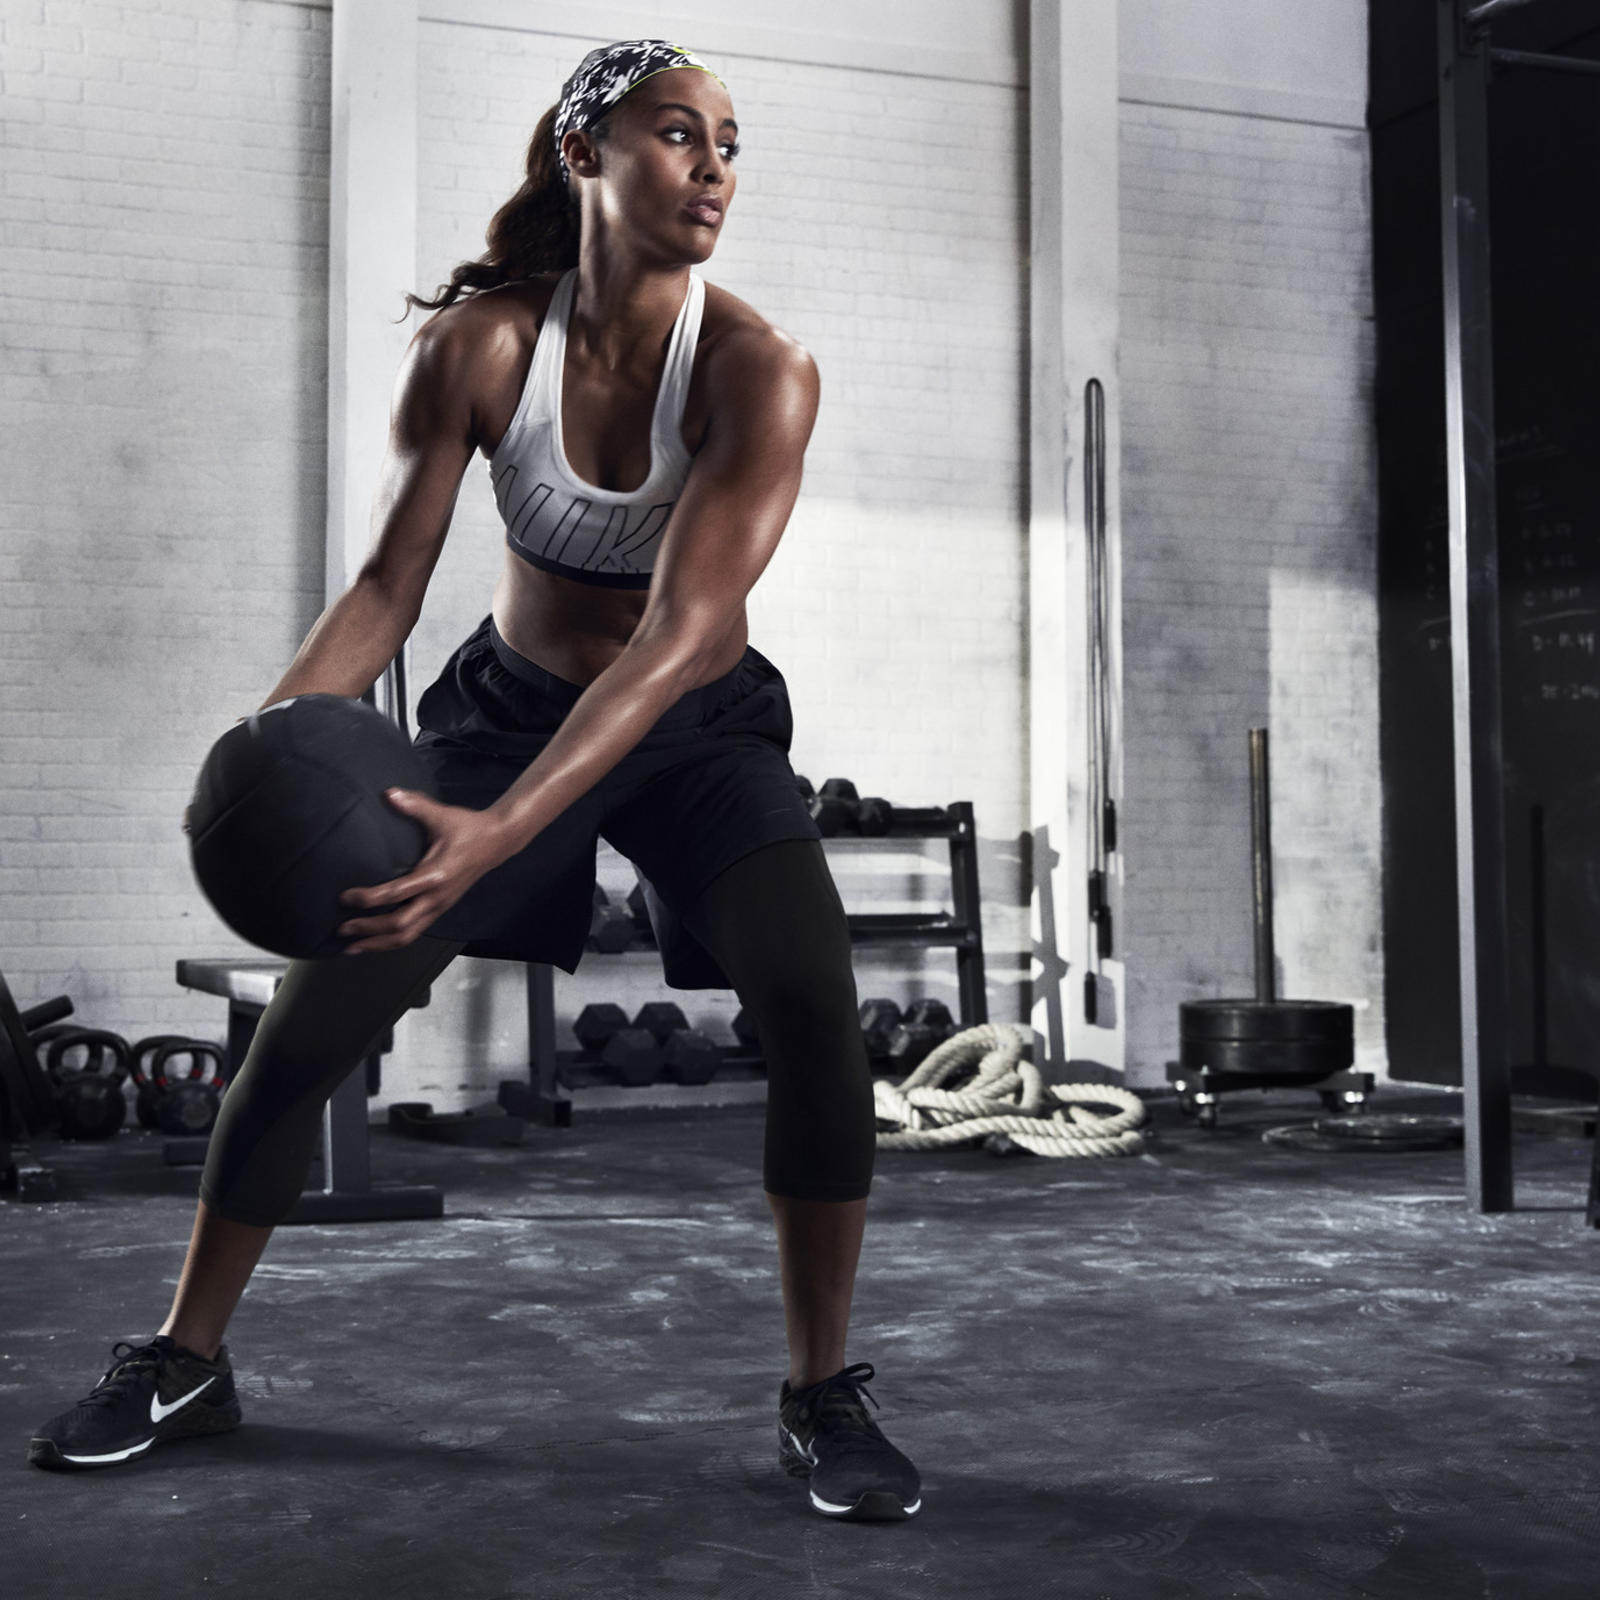 Nike Meets Demands of All Athletes With Expanded Metcon Family ... c3da8239a